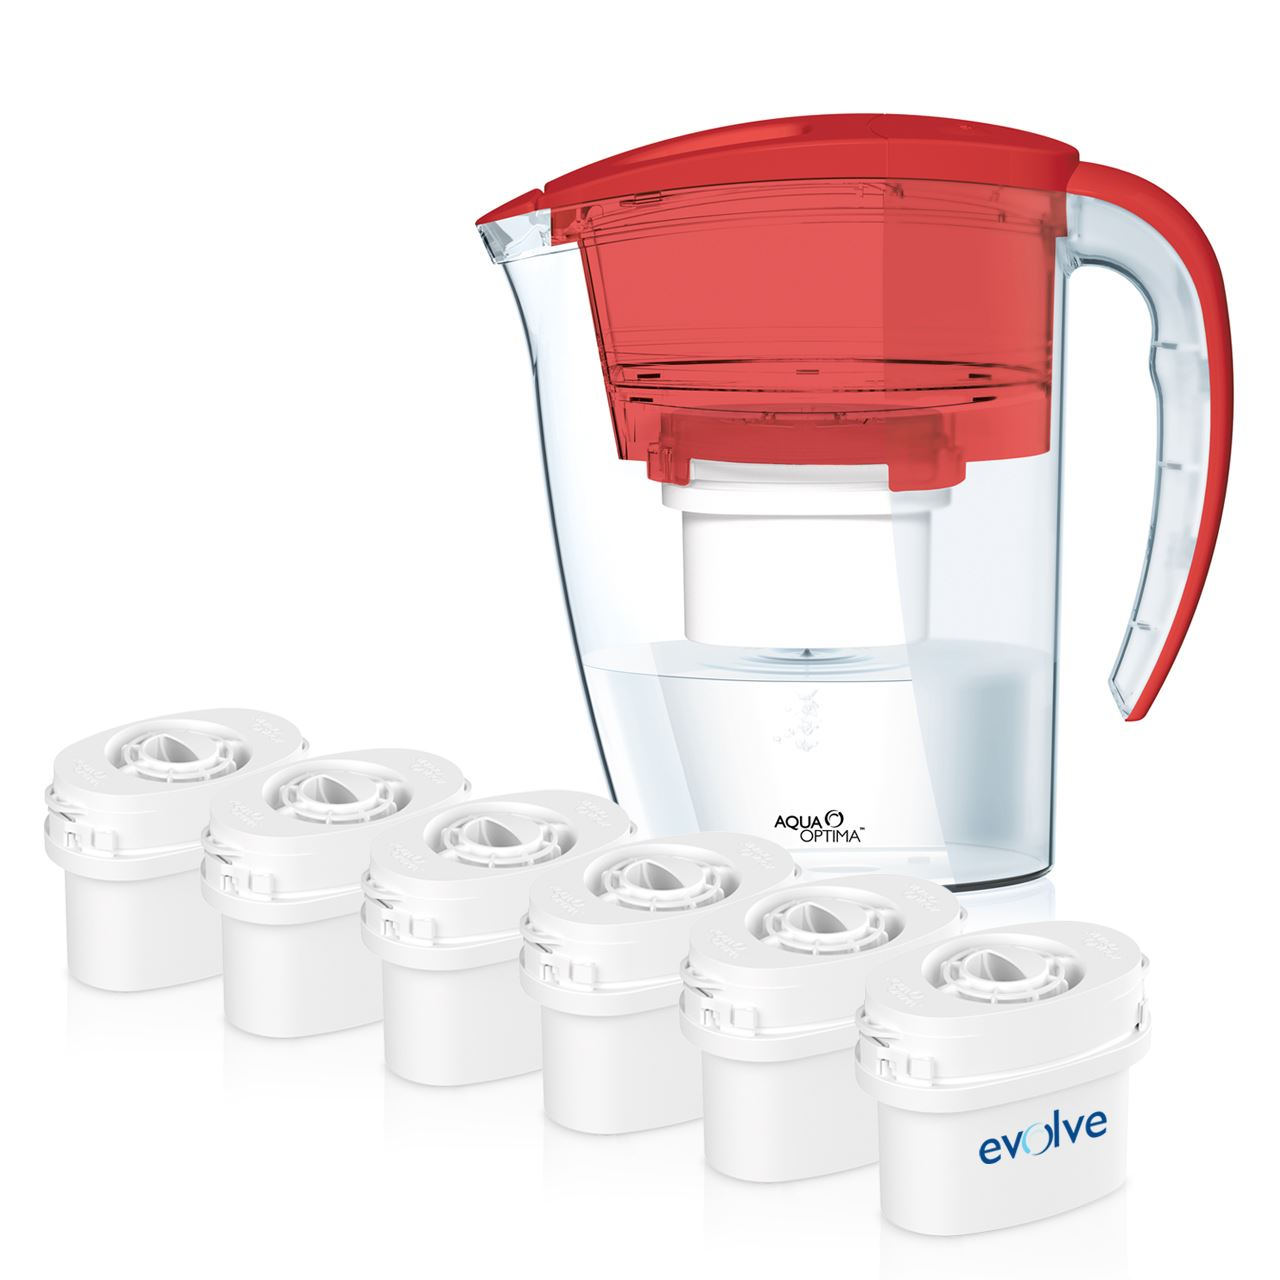 aqua optima red fridge water filter jug 6 refill. Black Bedroom Furniture Sets. Home Design Ideas